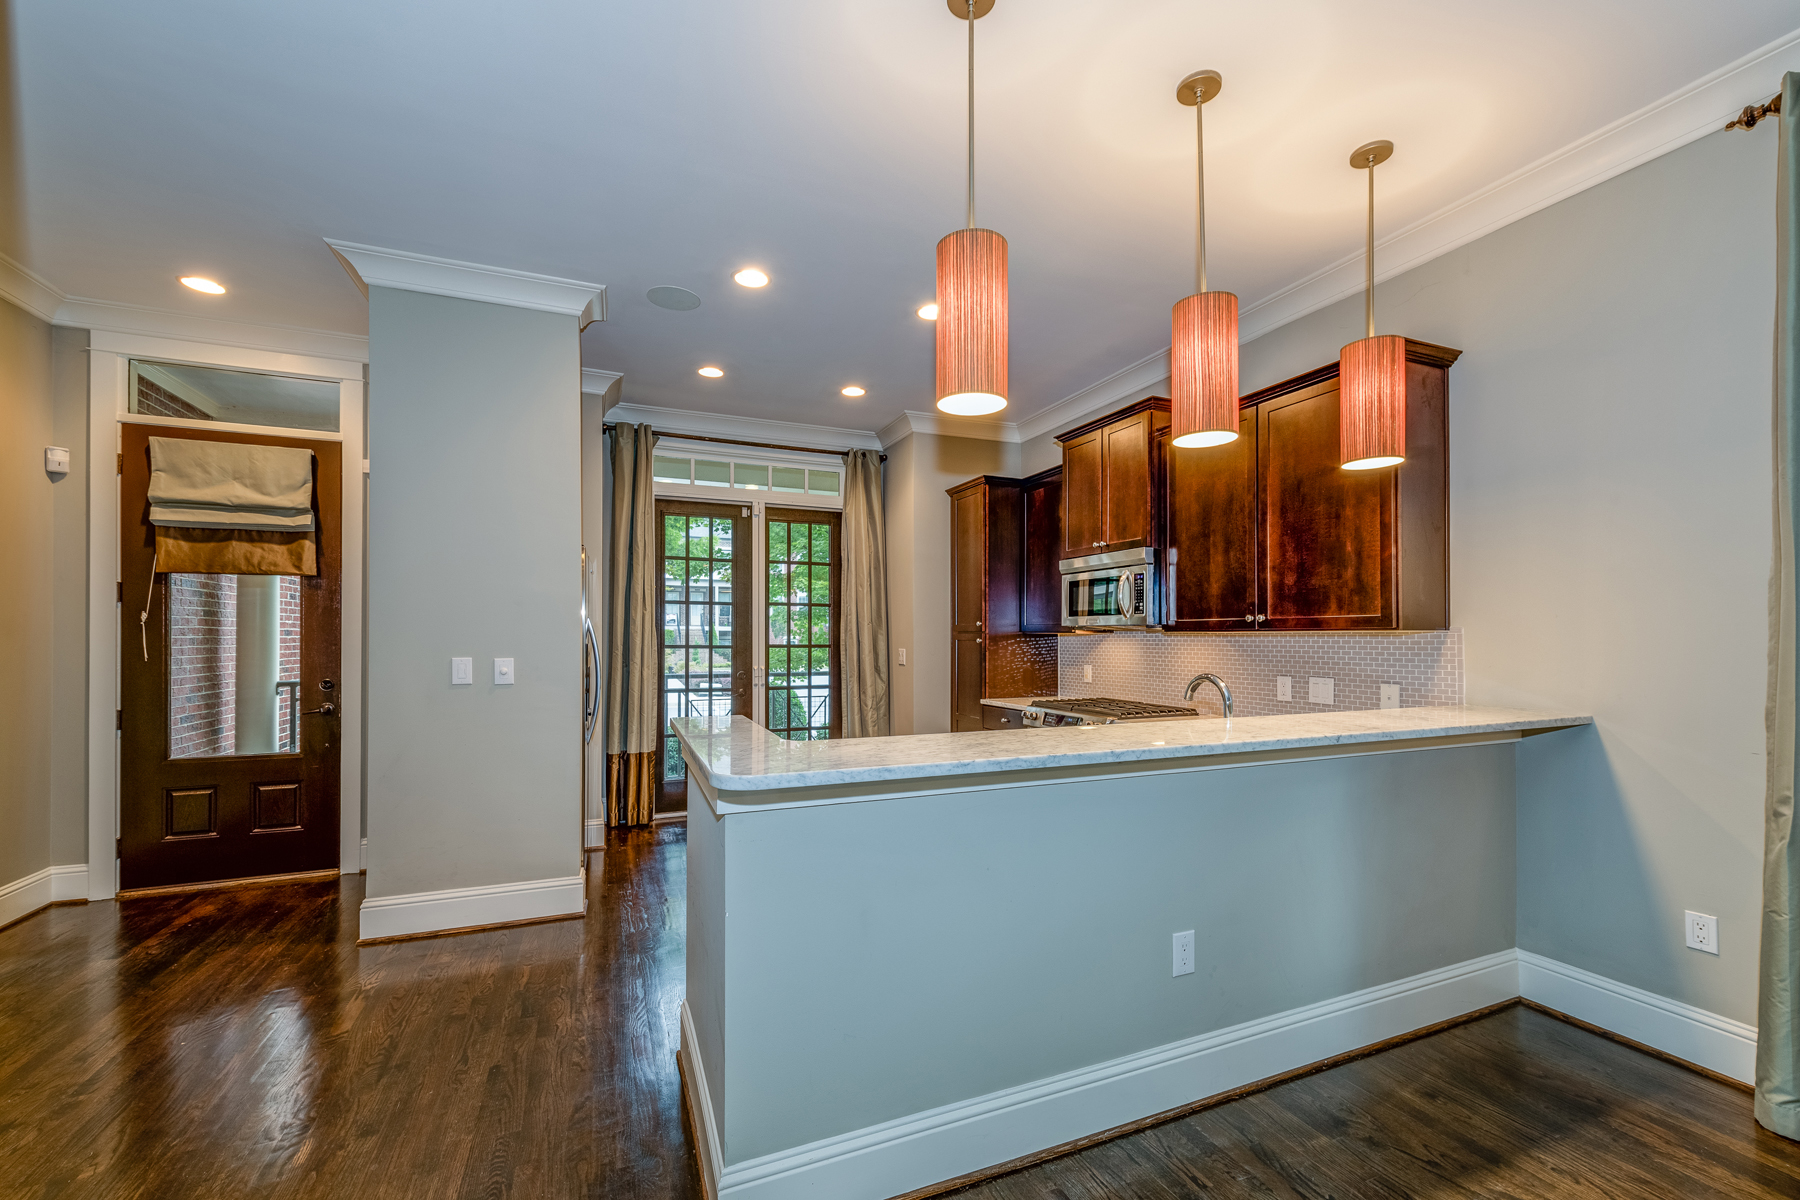 Moradia em banda para Arrendamento às Three Bedroom, Three And A Half Bath Townhome For Lease In Dunwoody 4714 Dogwood Alley Dunwoody, Geórgia 30338 Estados Unidos